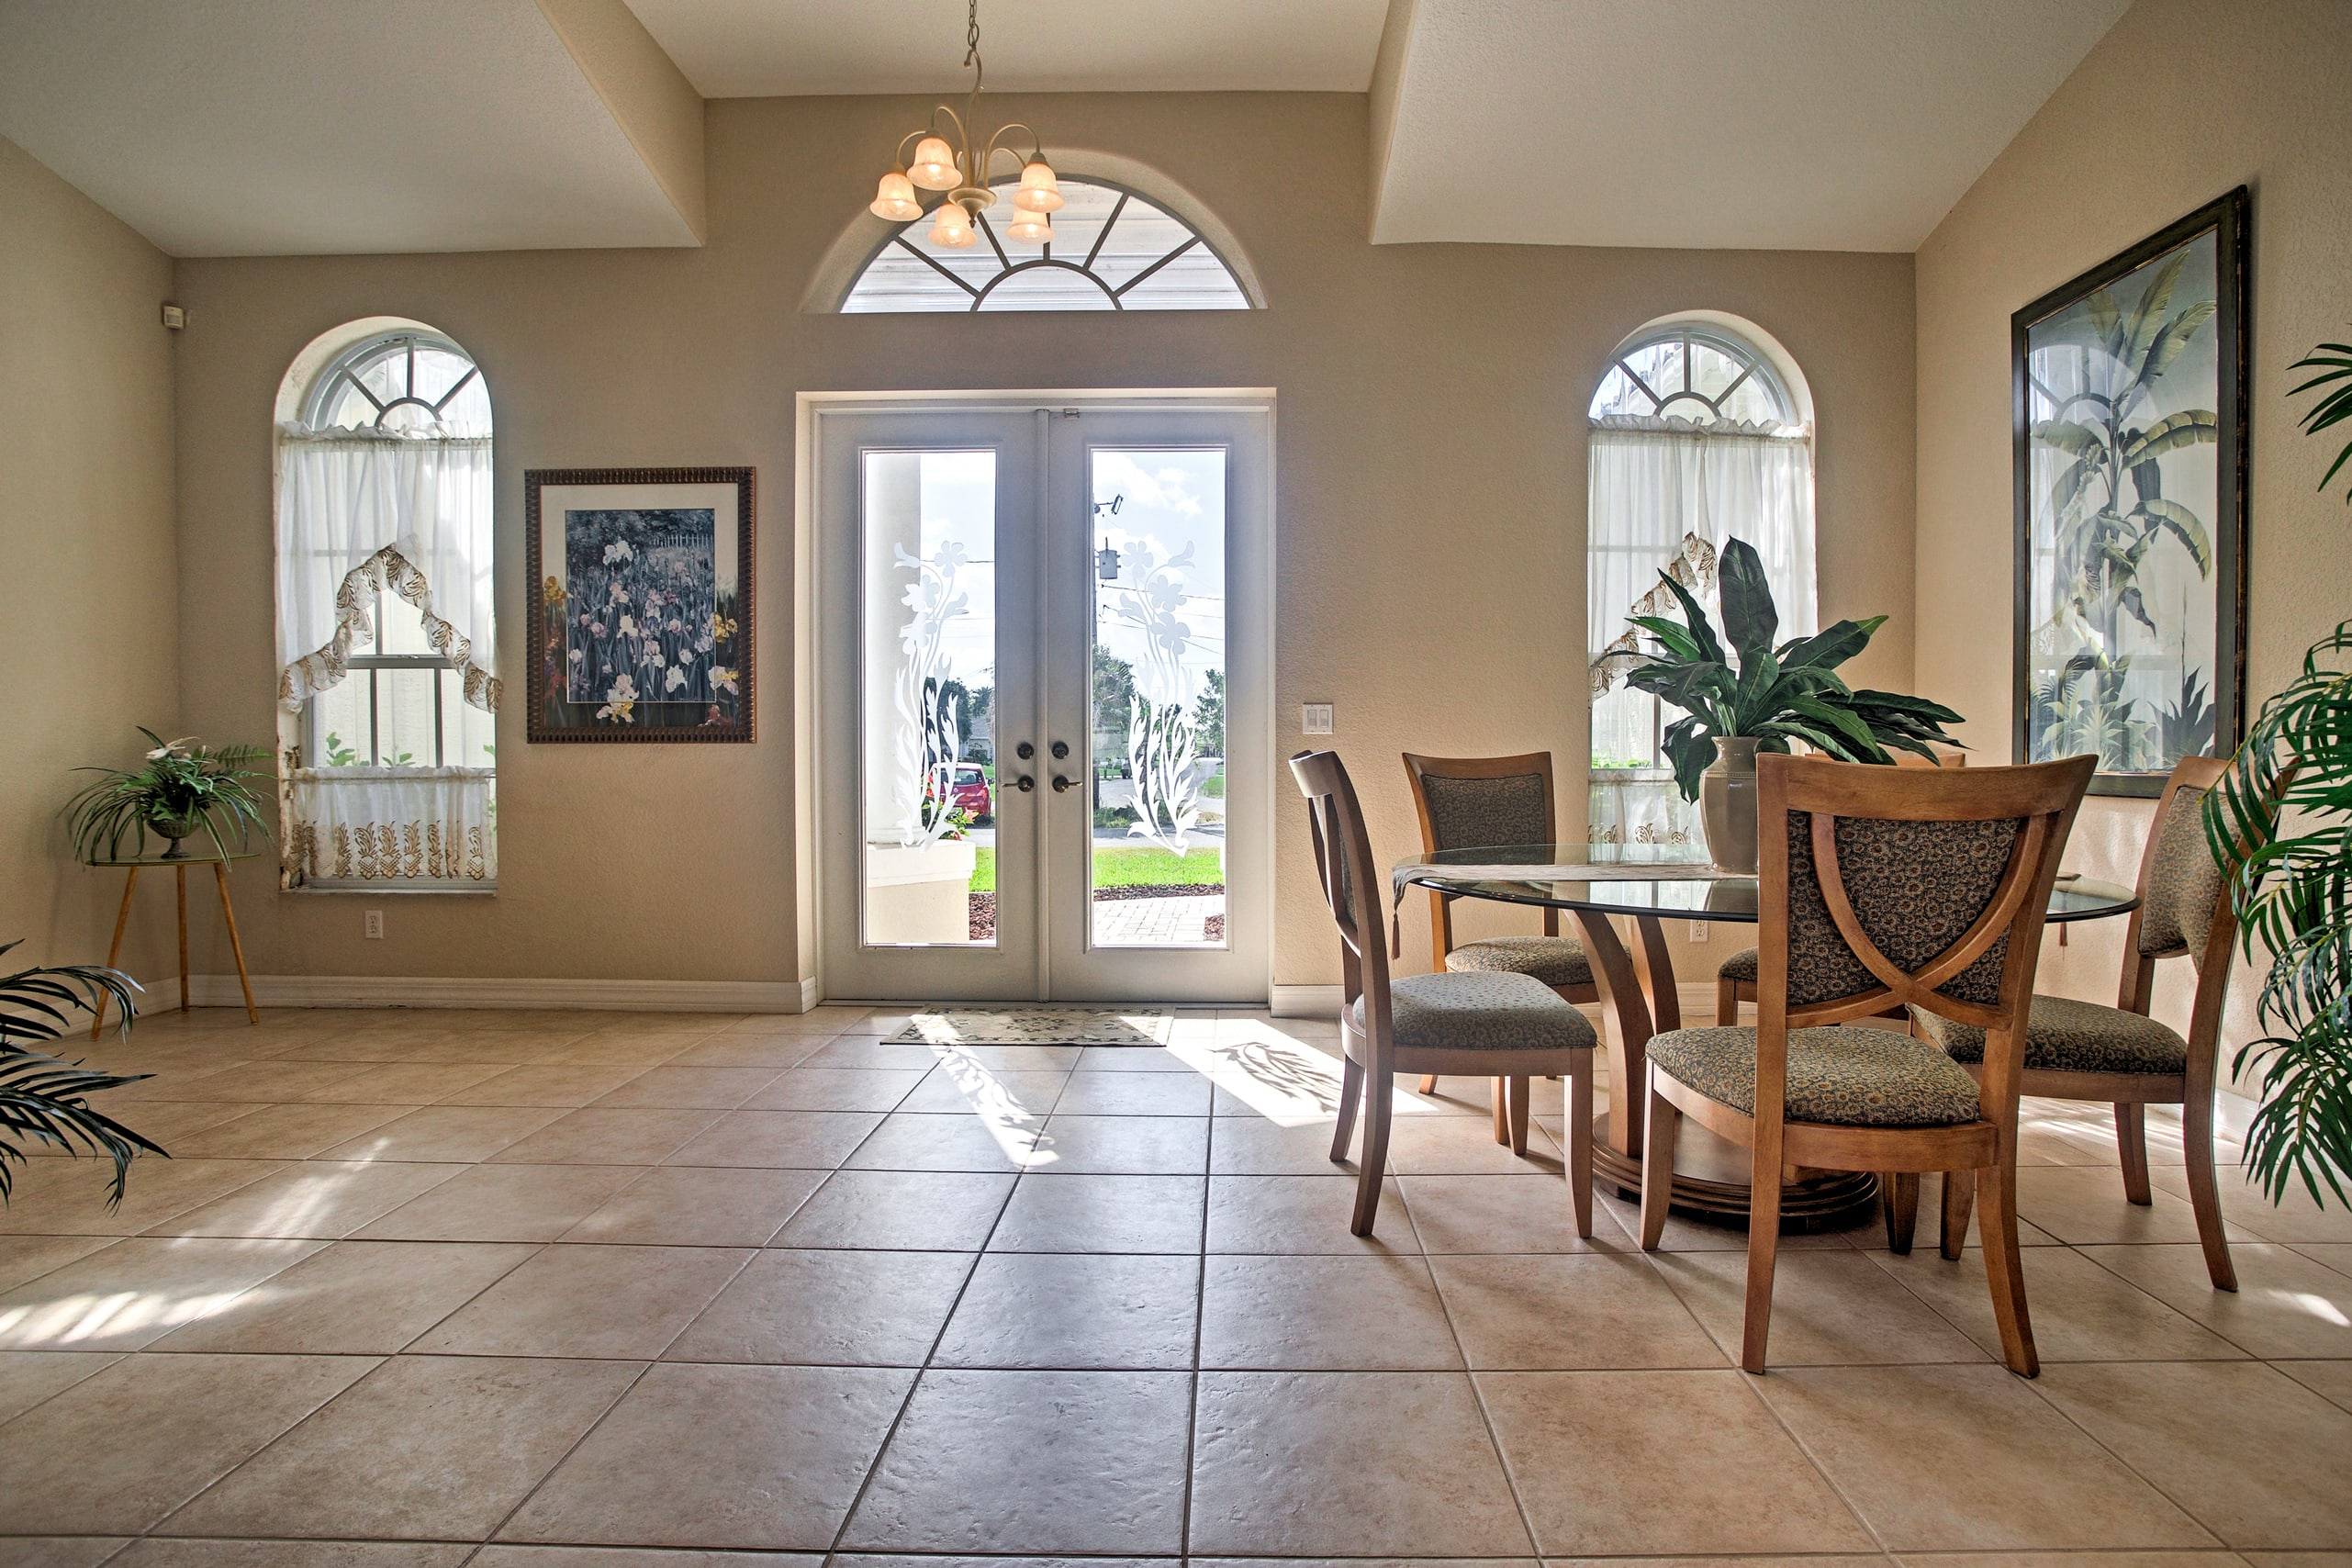 Enjoy gazing out at the peaceful residential neighborhood.